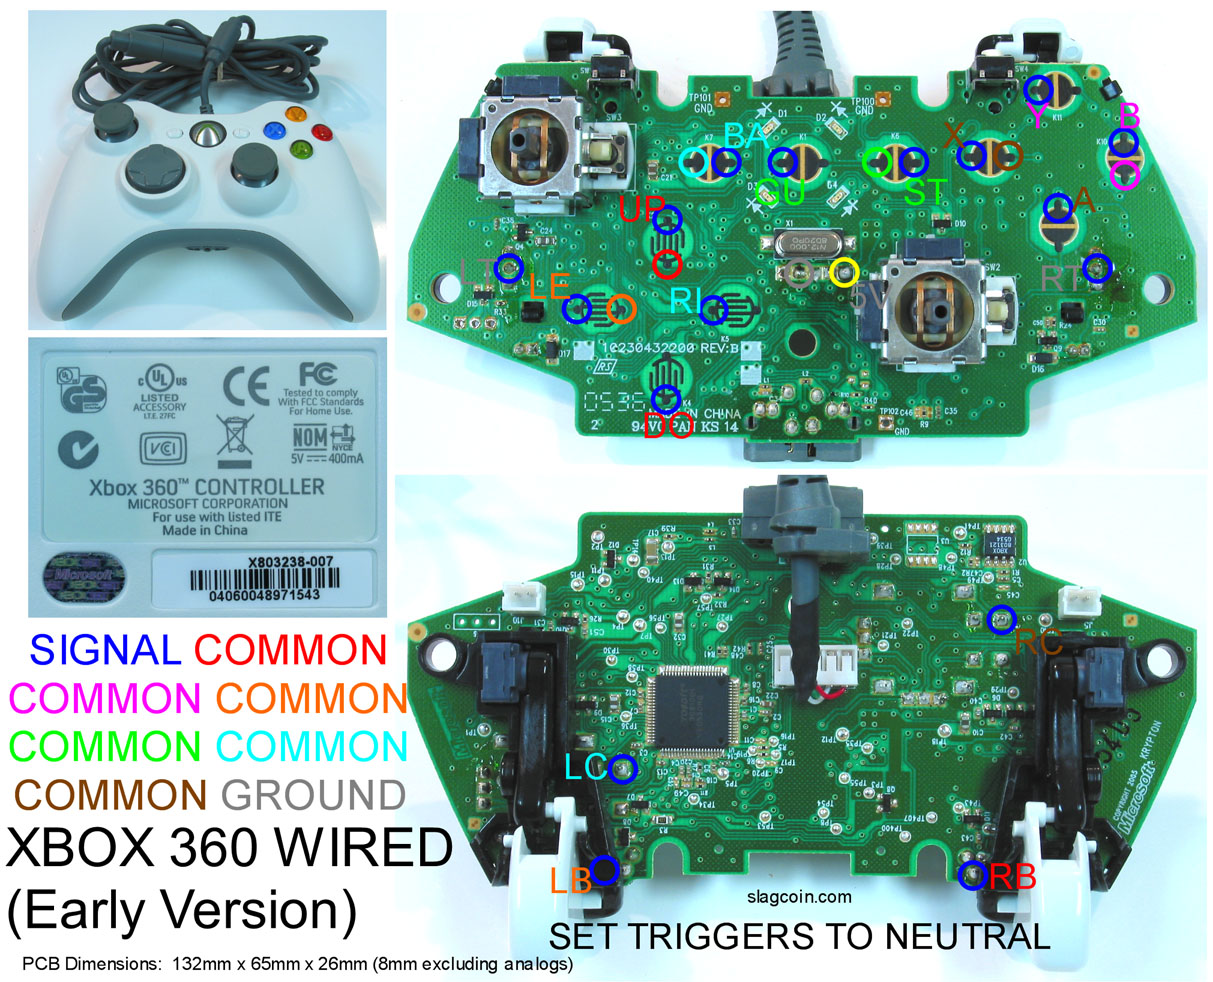 Xbox 360 Controller Wire Diagram Center Comparator Drives Lamp Circuit Tradeoficcom Gaming Gadgets And Mods Original Pcb Rh Blankj5 Blogspot Com Wired Board Wireless